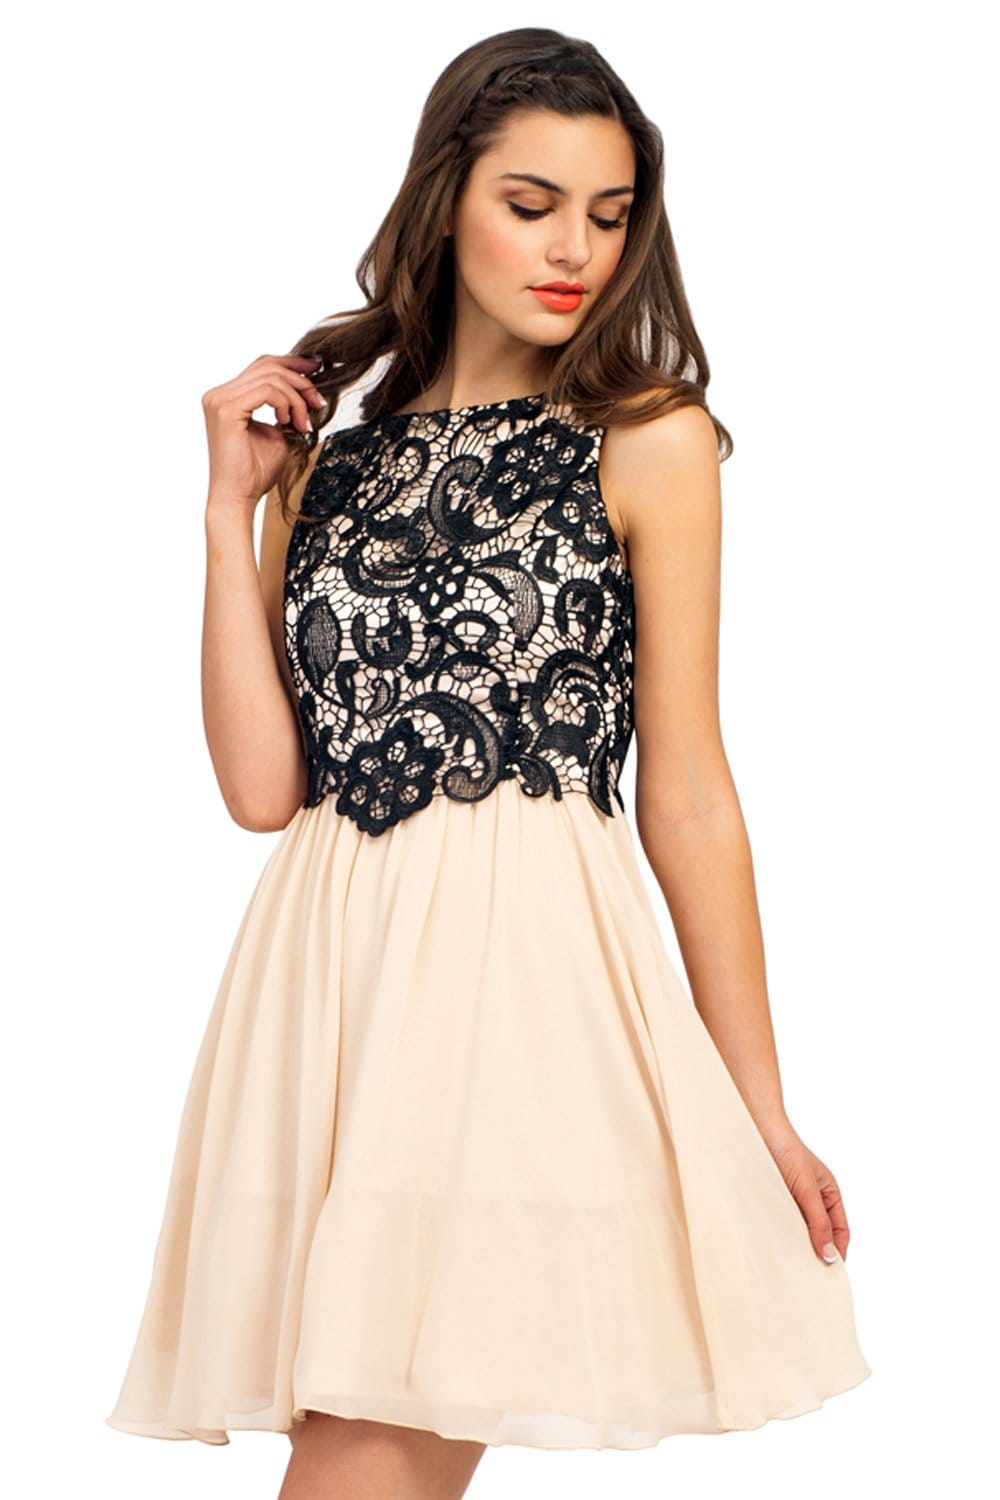 From the office to the office party lace dresses can go anywhere with you. Add a blazer for those cooler days or some fashion jewelry and pumps with your black lace dress for cocktail hour. From sheath to the flirty fit and flare the intricate details of our lace overlay dresses are sure to impress time and time again.